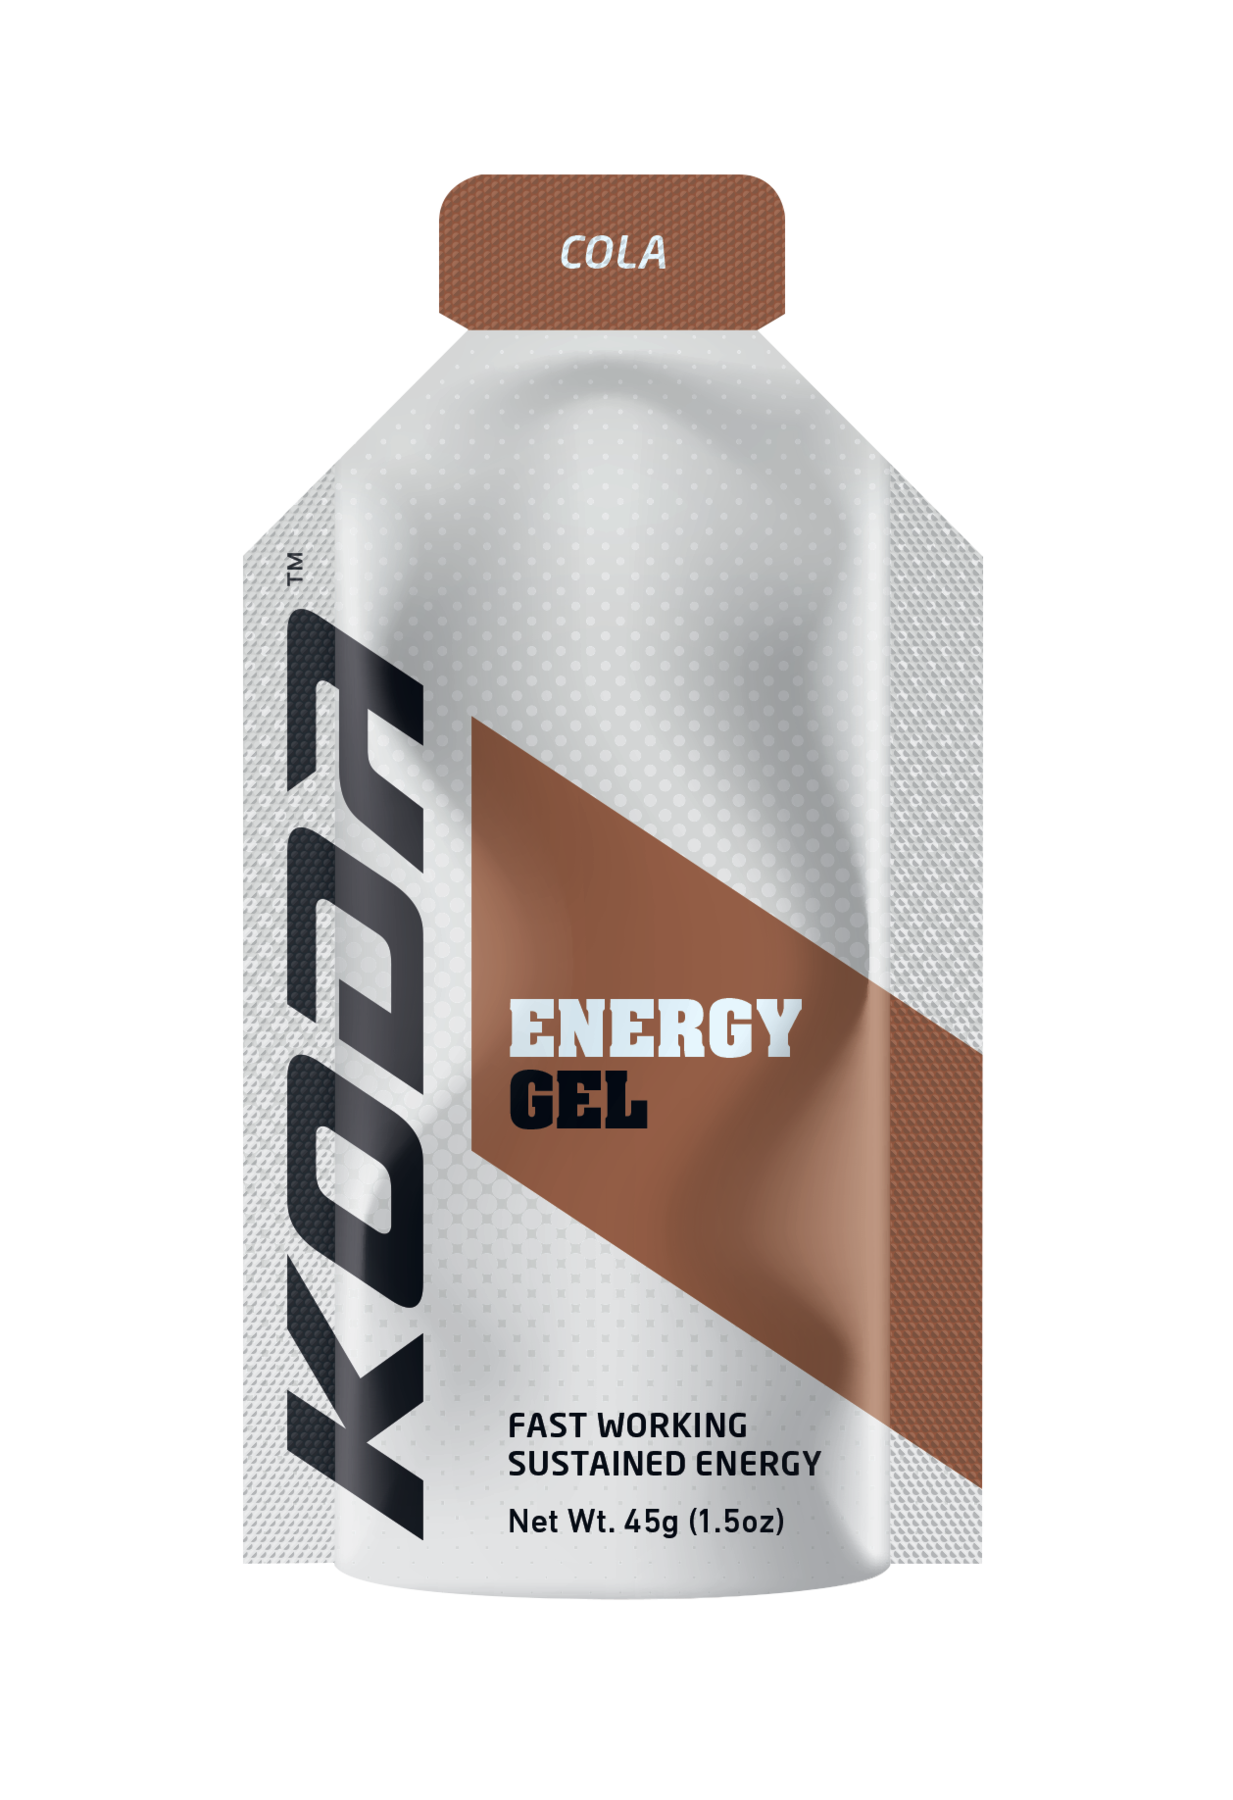 Koda Energy Gels Box Qty (24 Pack) - Cola - Find Your Feet Australia Hobart Launceston Tasmania